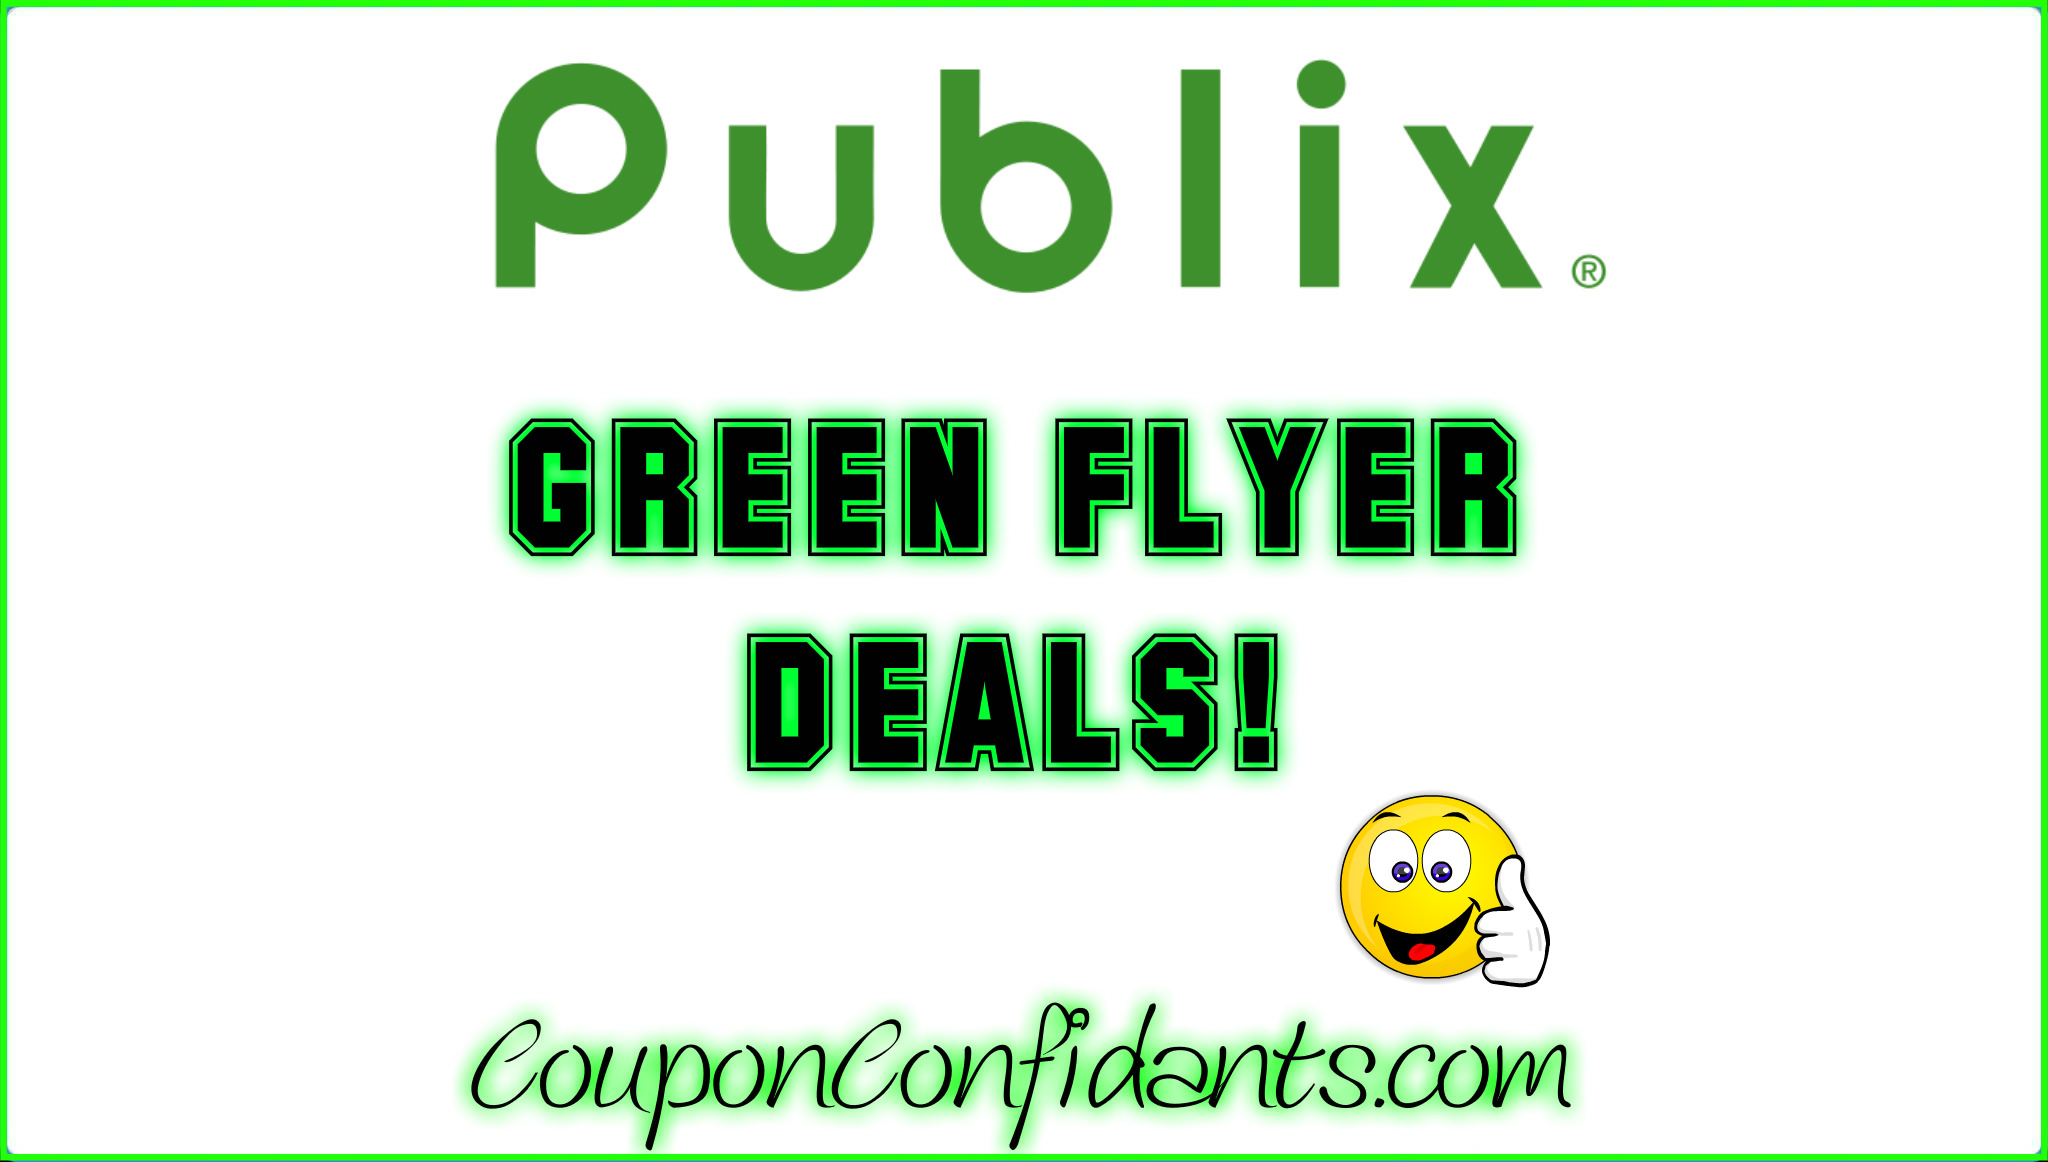 Publix Green Flyer Deals and Full List Oct 14 - Oct 27